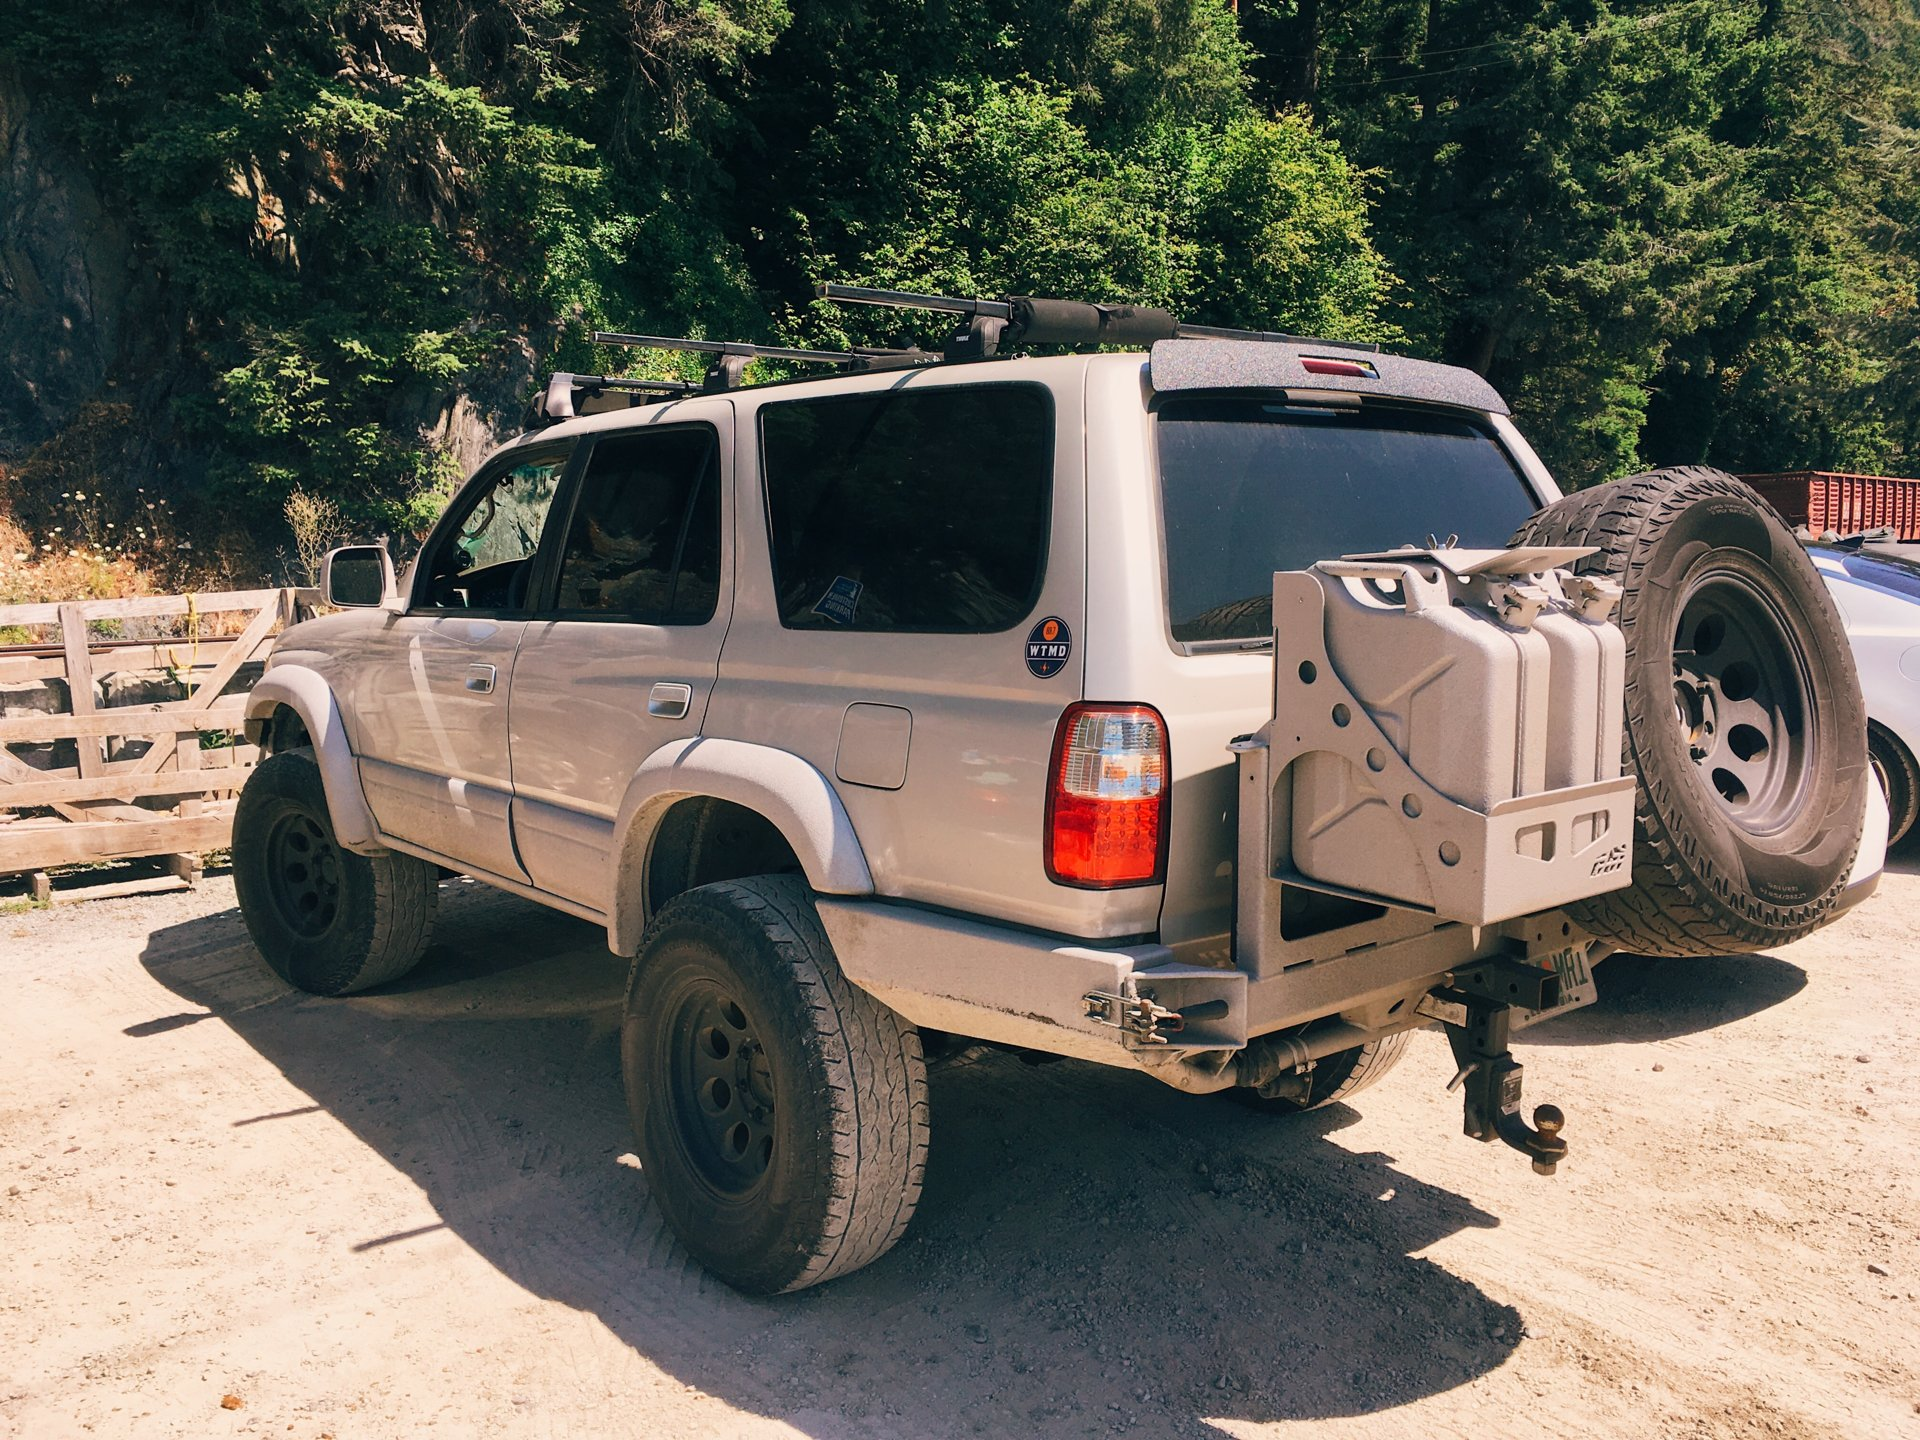 For Sale Cbi Offroad 3rd Gen 4runner Rear Bumper W Tire And 2 Jerry Can Swingout Ih8mud Forum